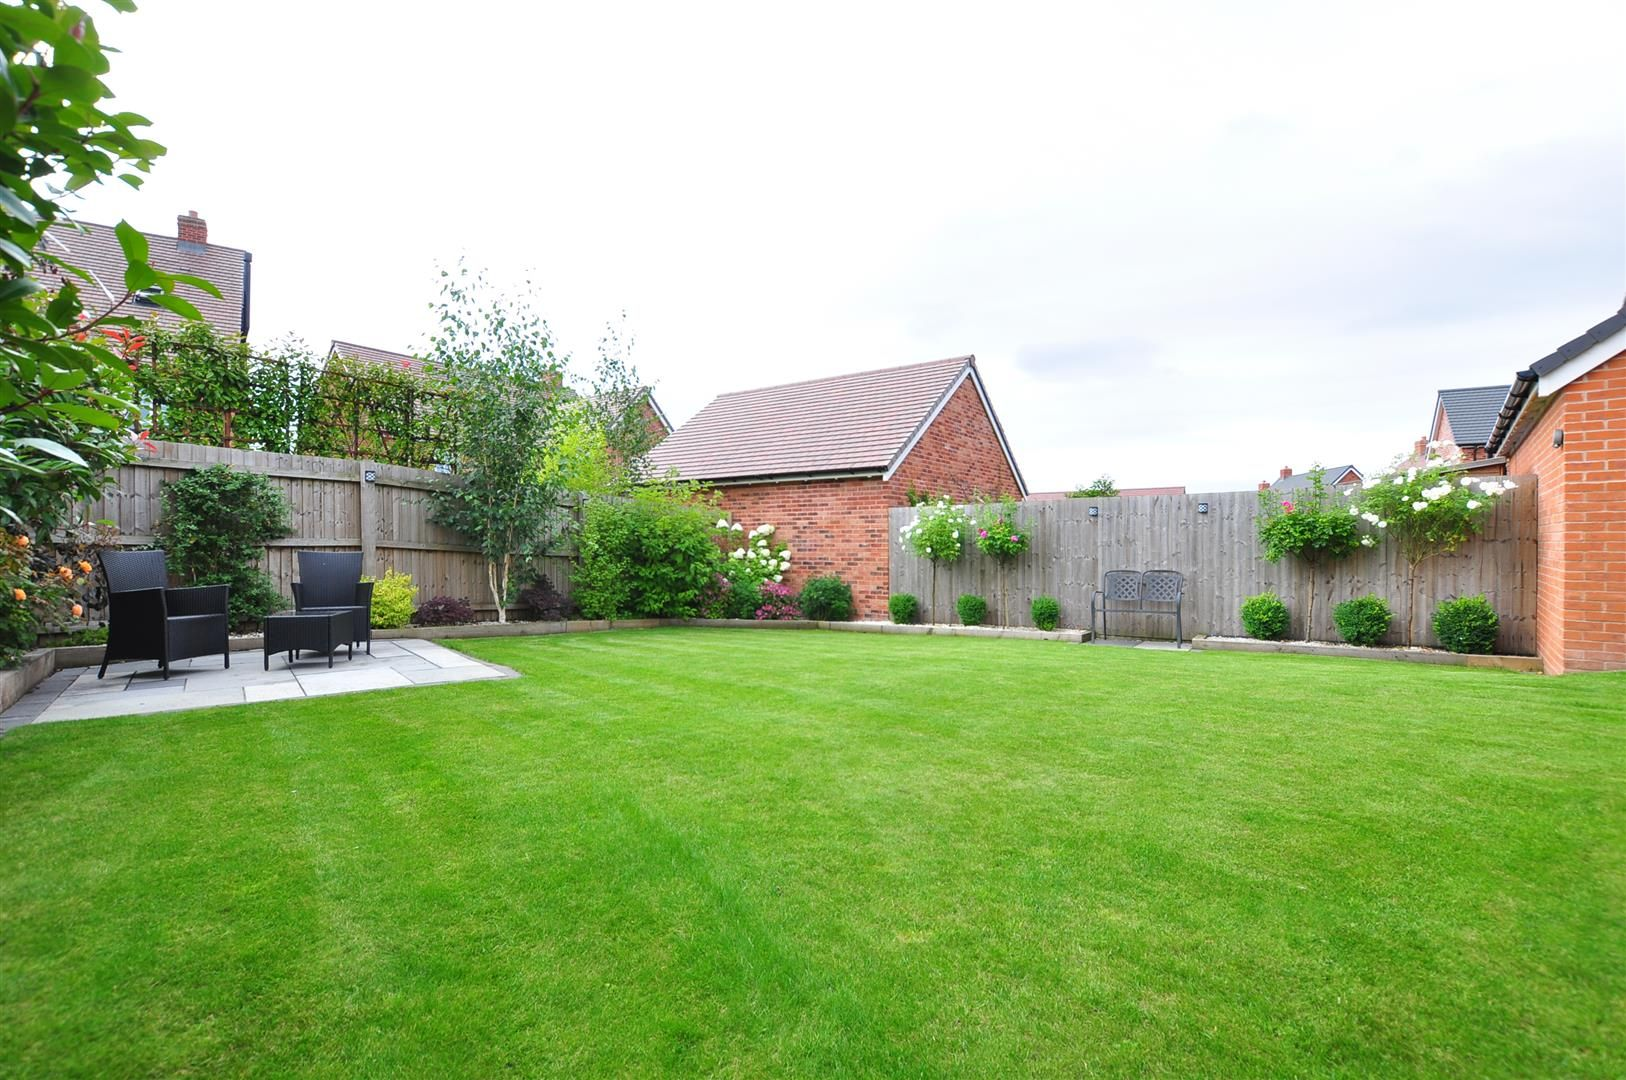 4 bed detached for sale in Hagley  - Property Image 22